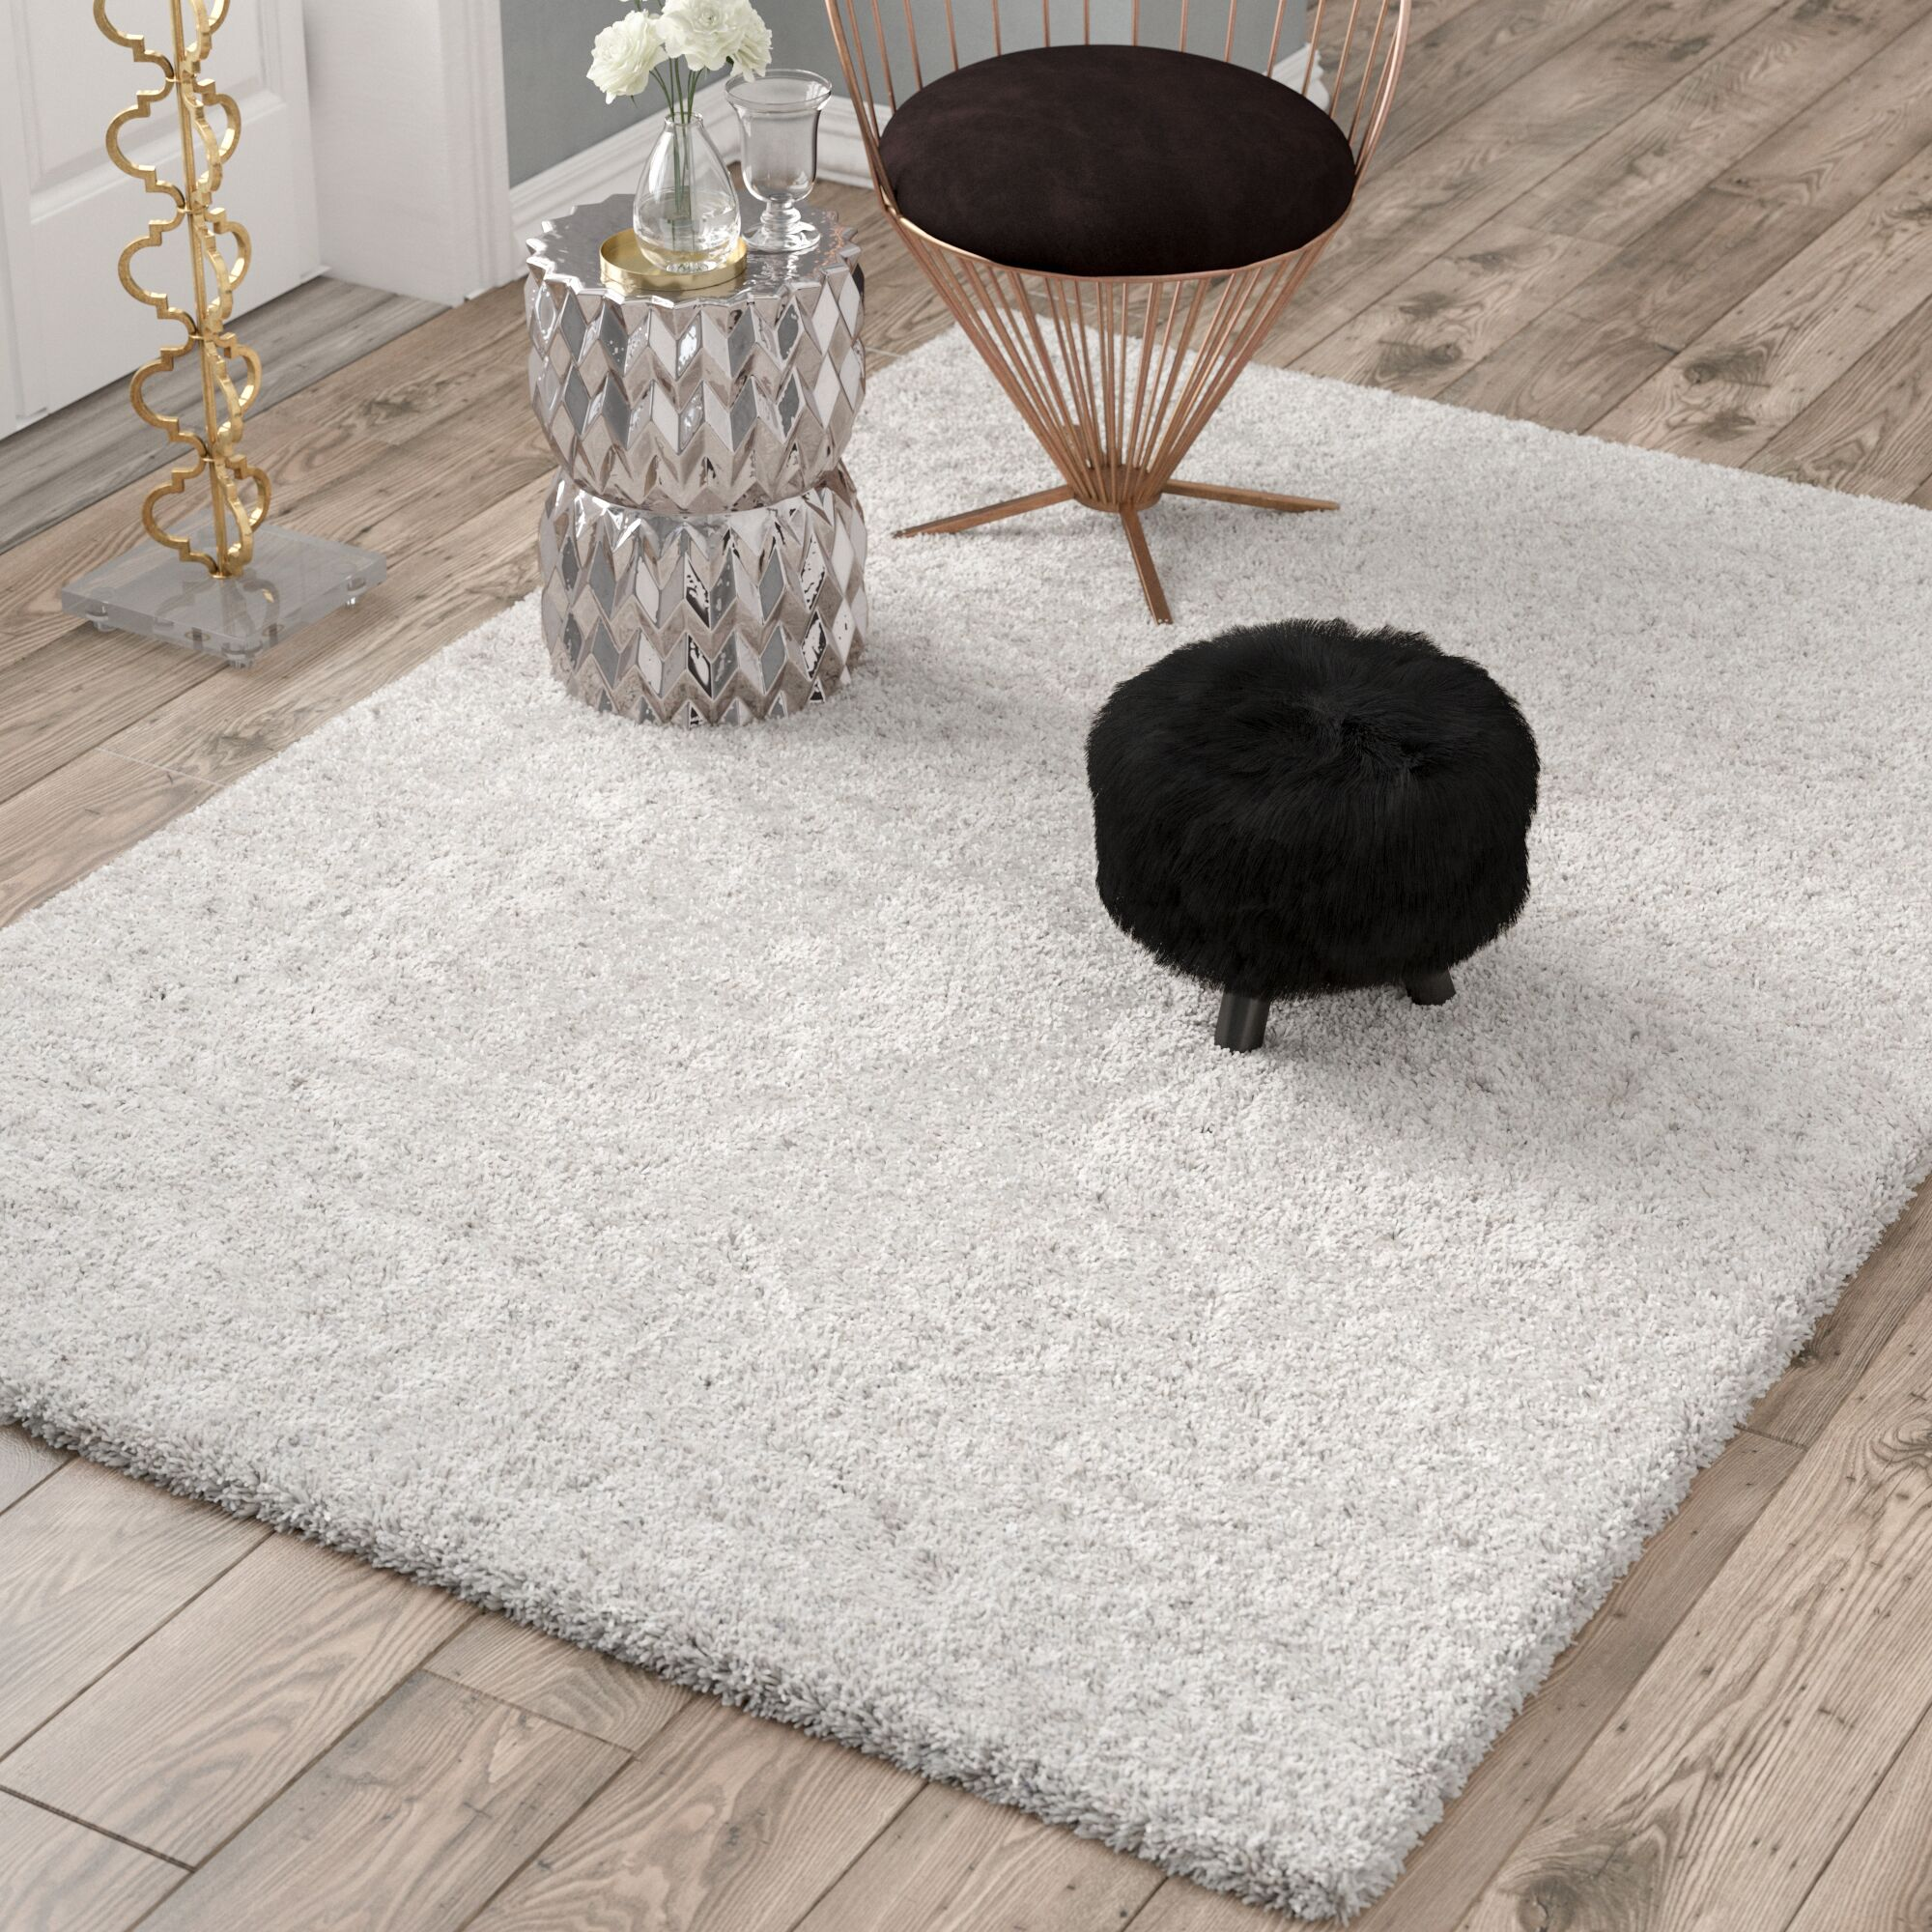 Otley White/Light Gray Area Rug Rug Size: Square 5'3